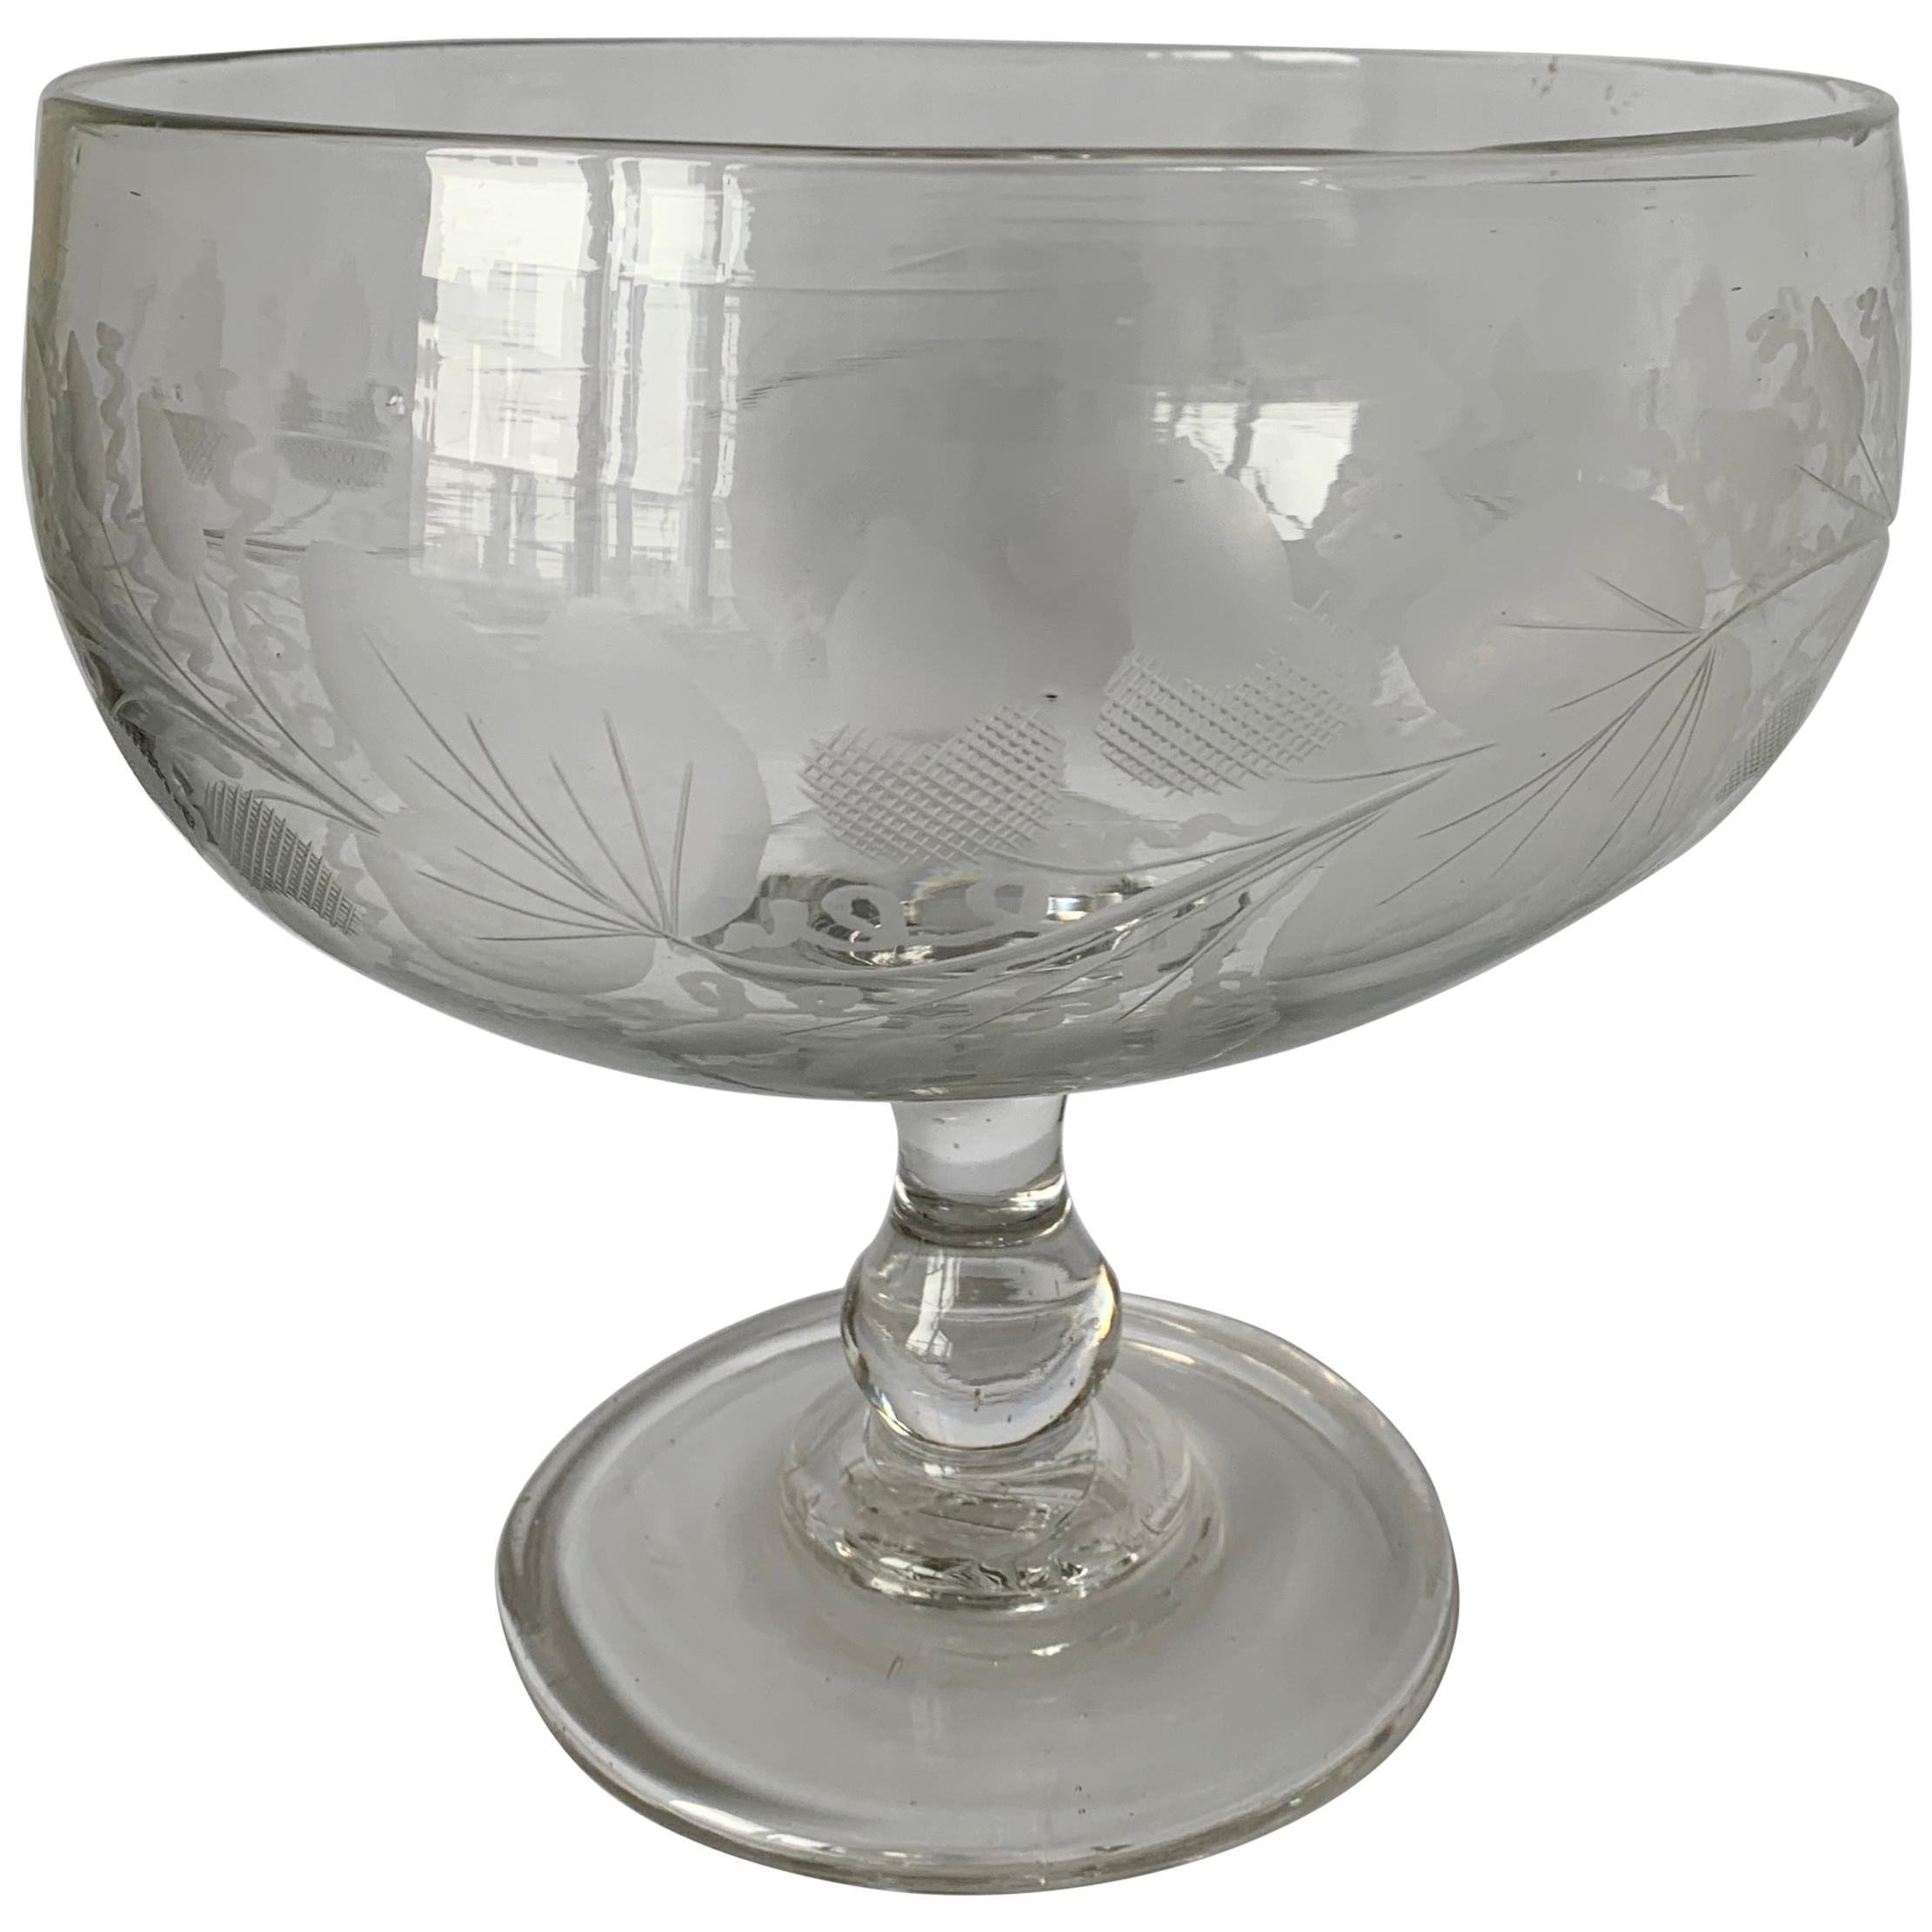 1840s Antique American Engraved Lead Blown Glass Footed Compote